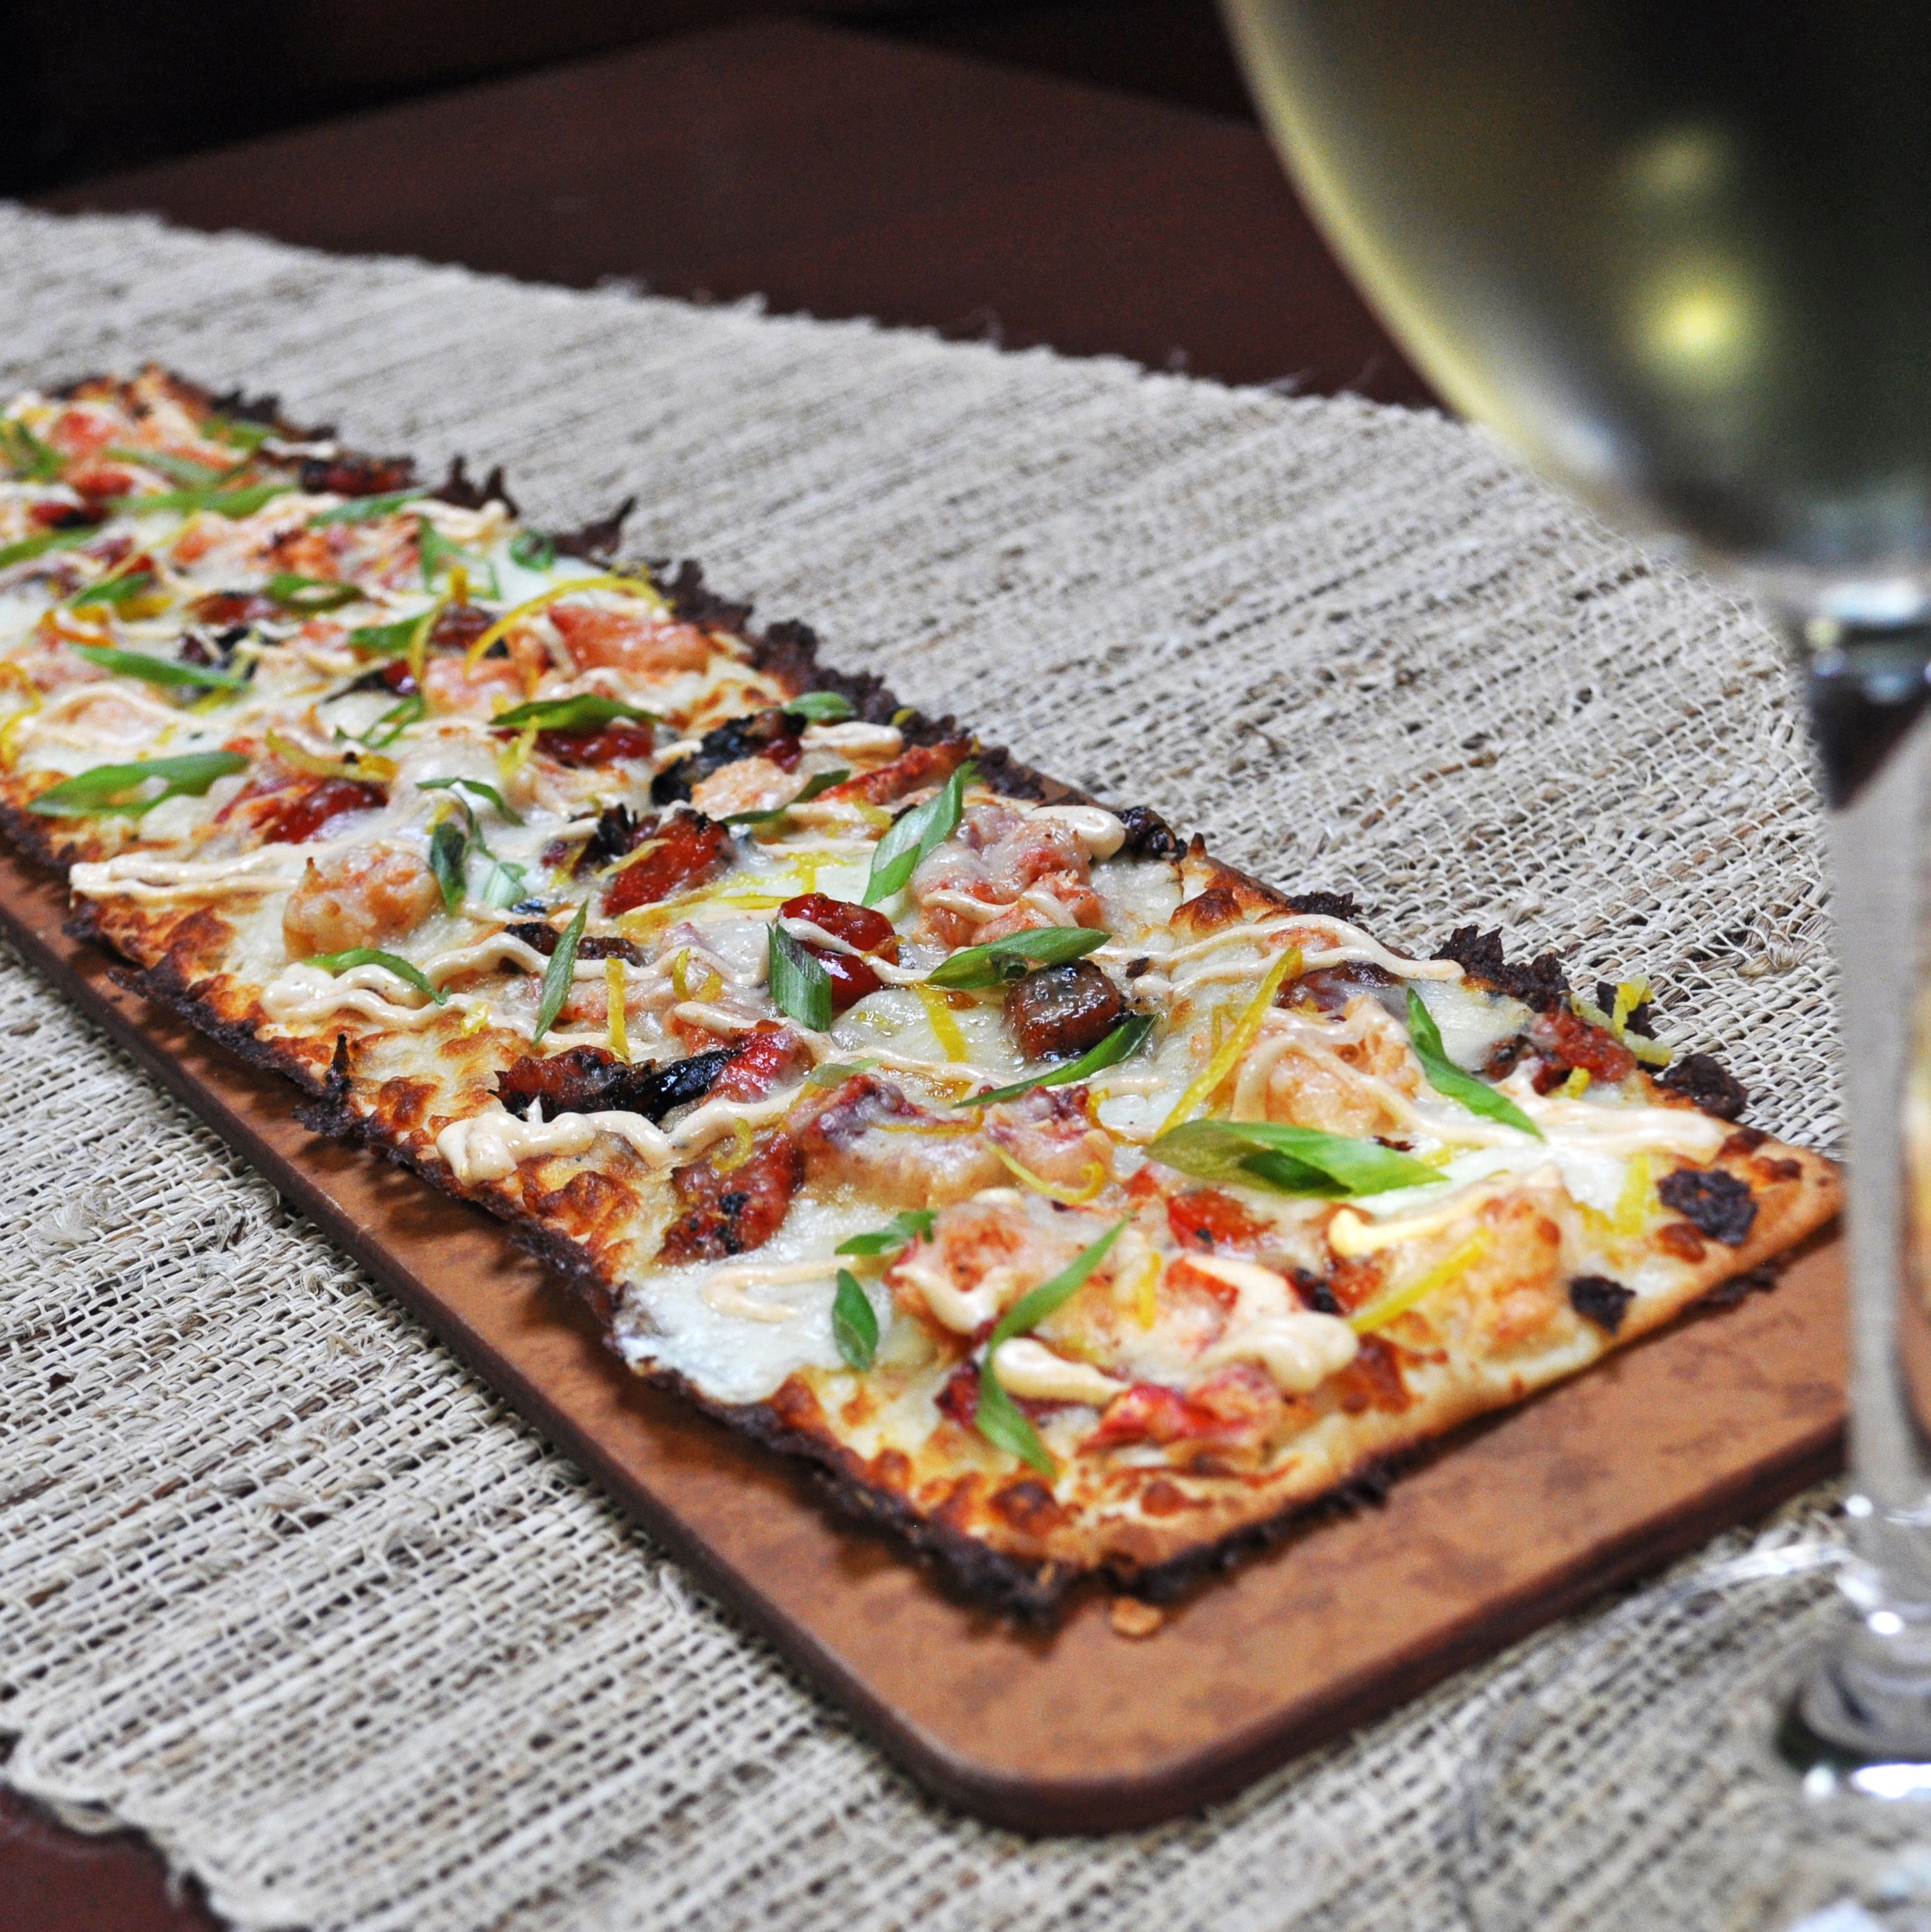 Our brickoven flatbreads make the perfect canvas for